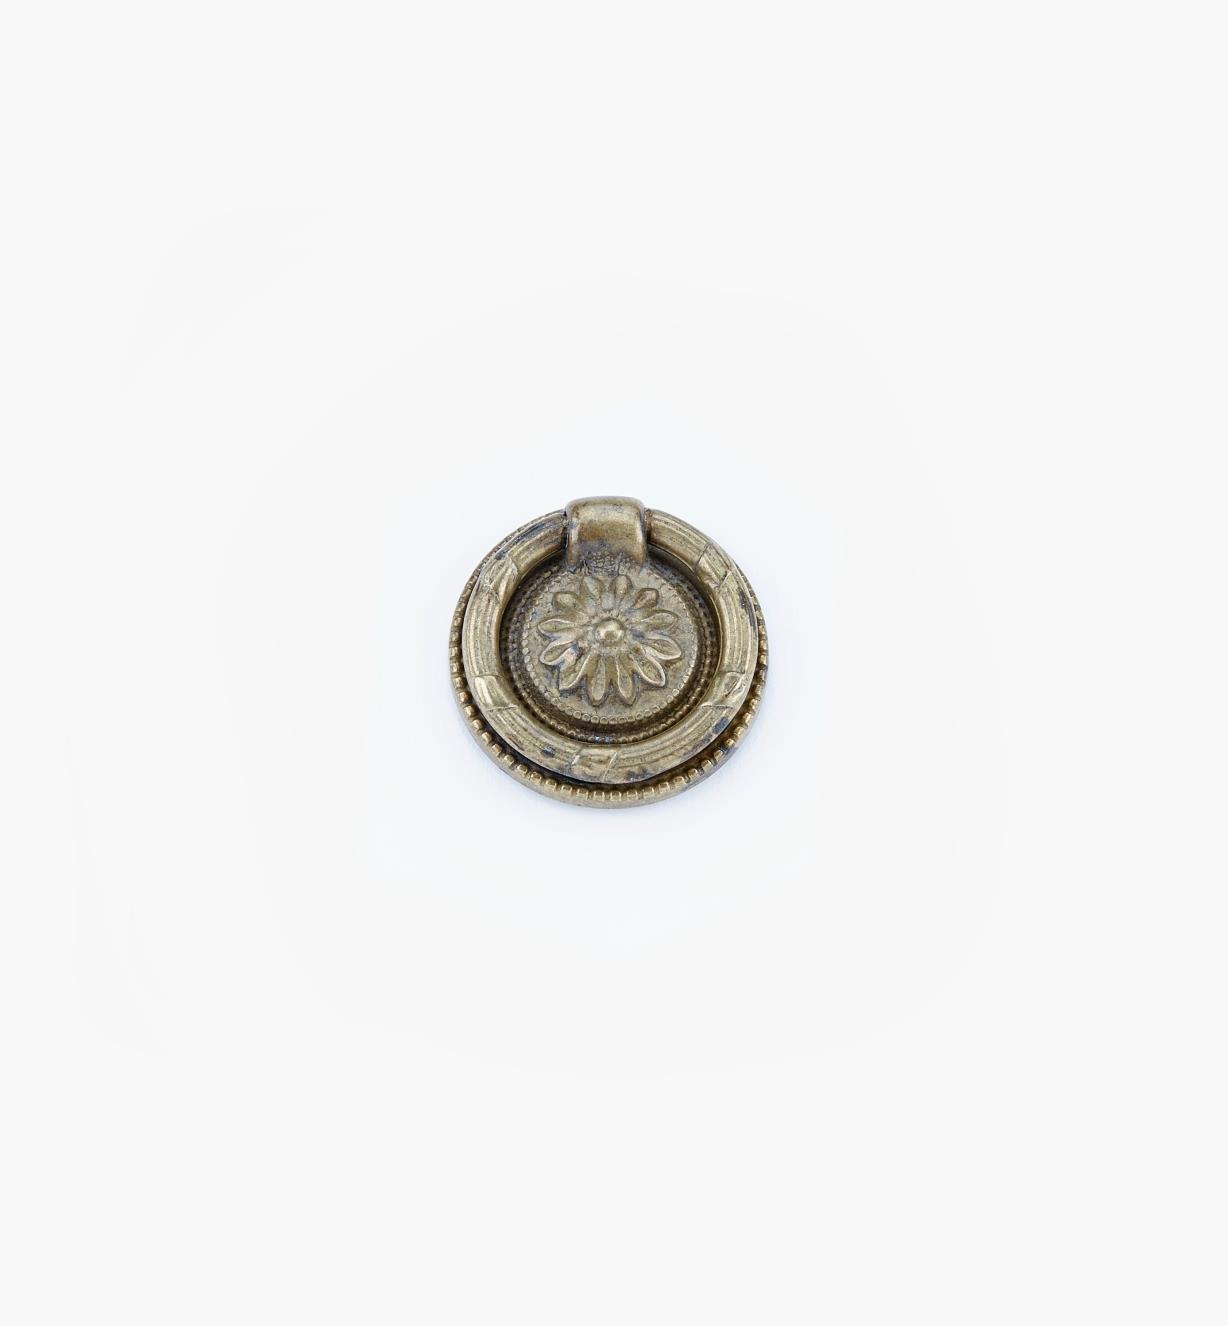 01A7438 - 38mm Old Brass Ring Pull